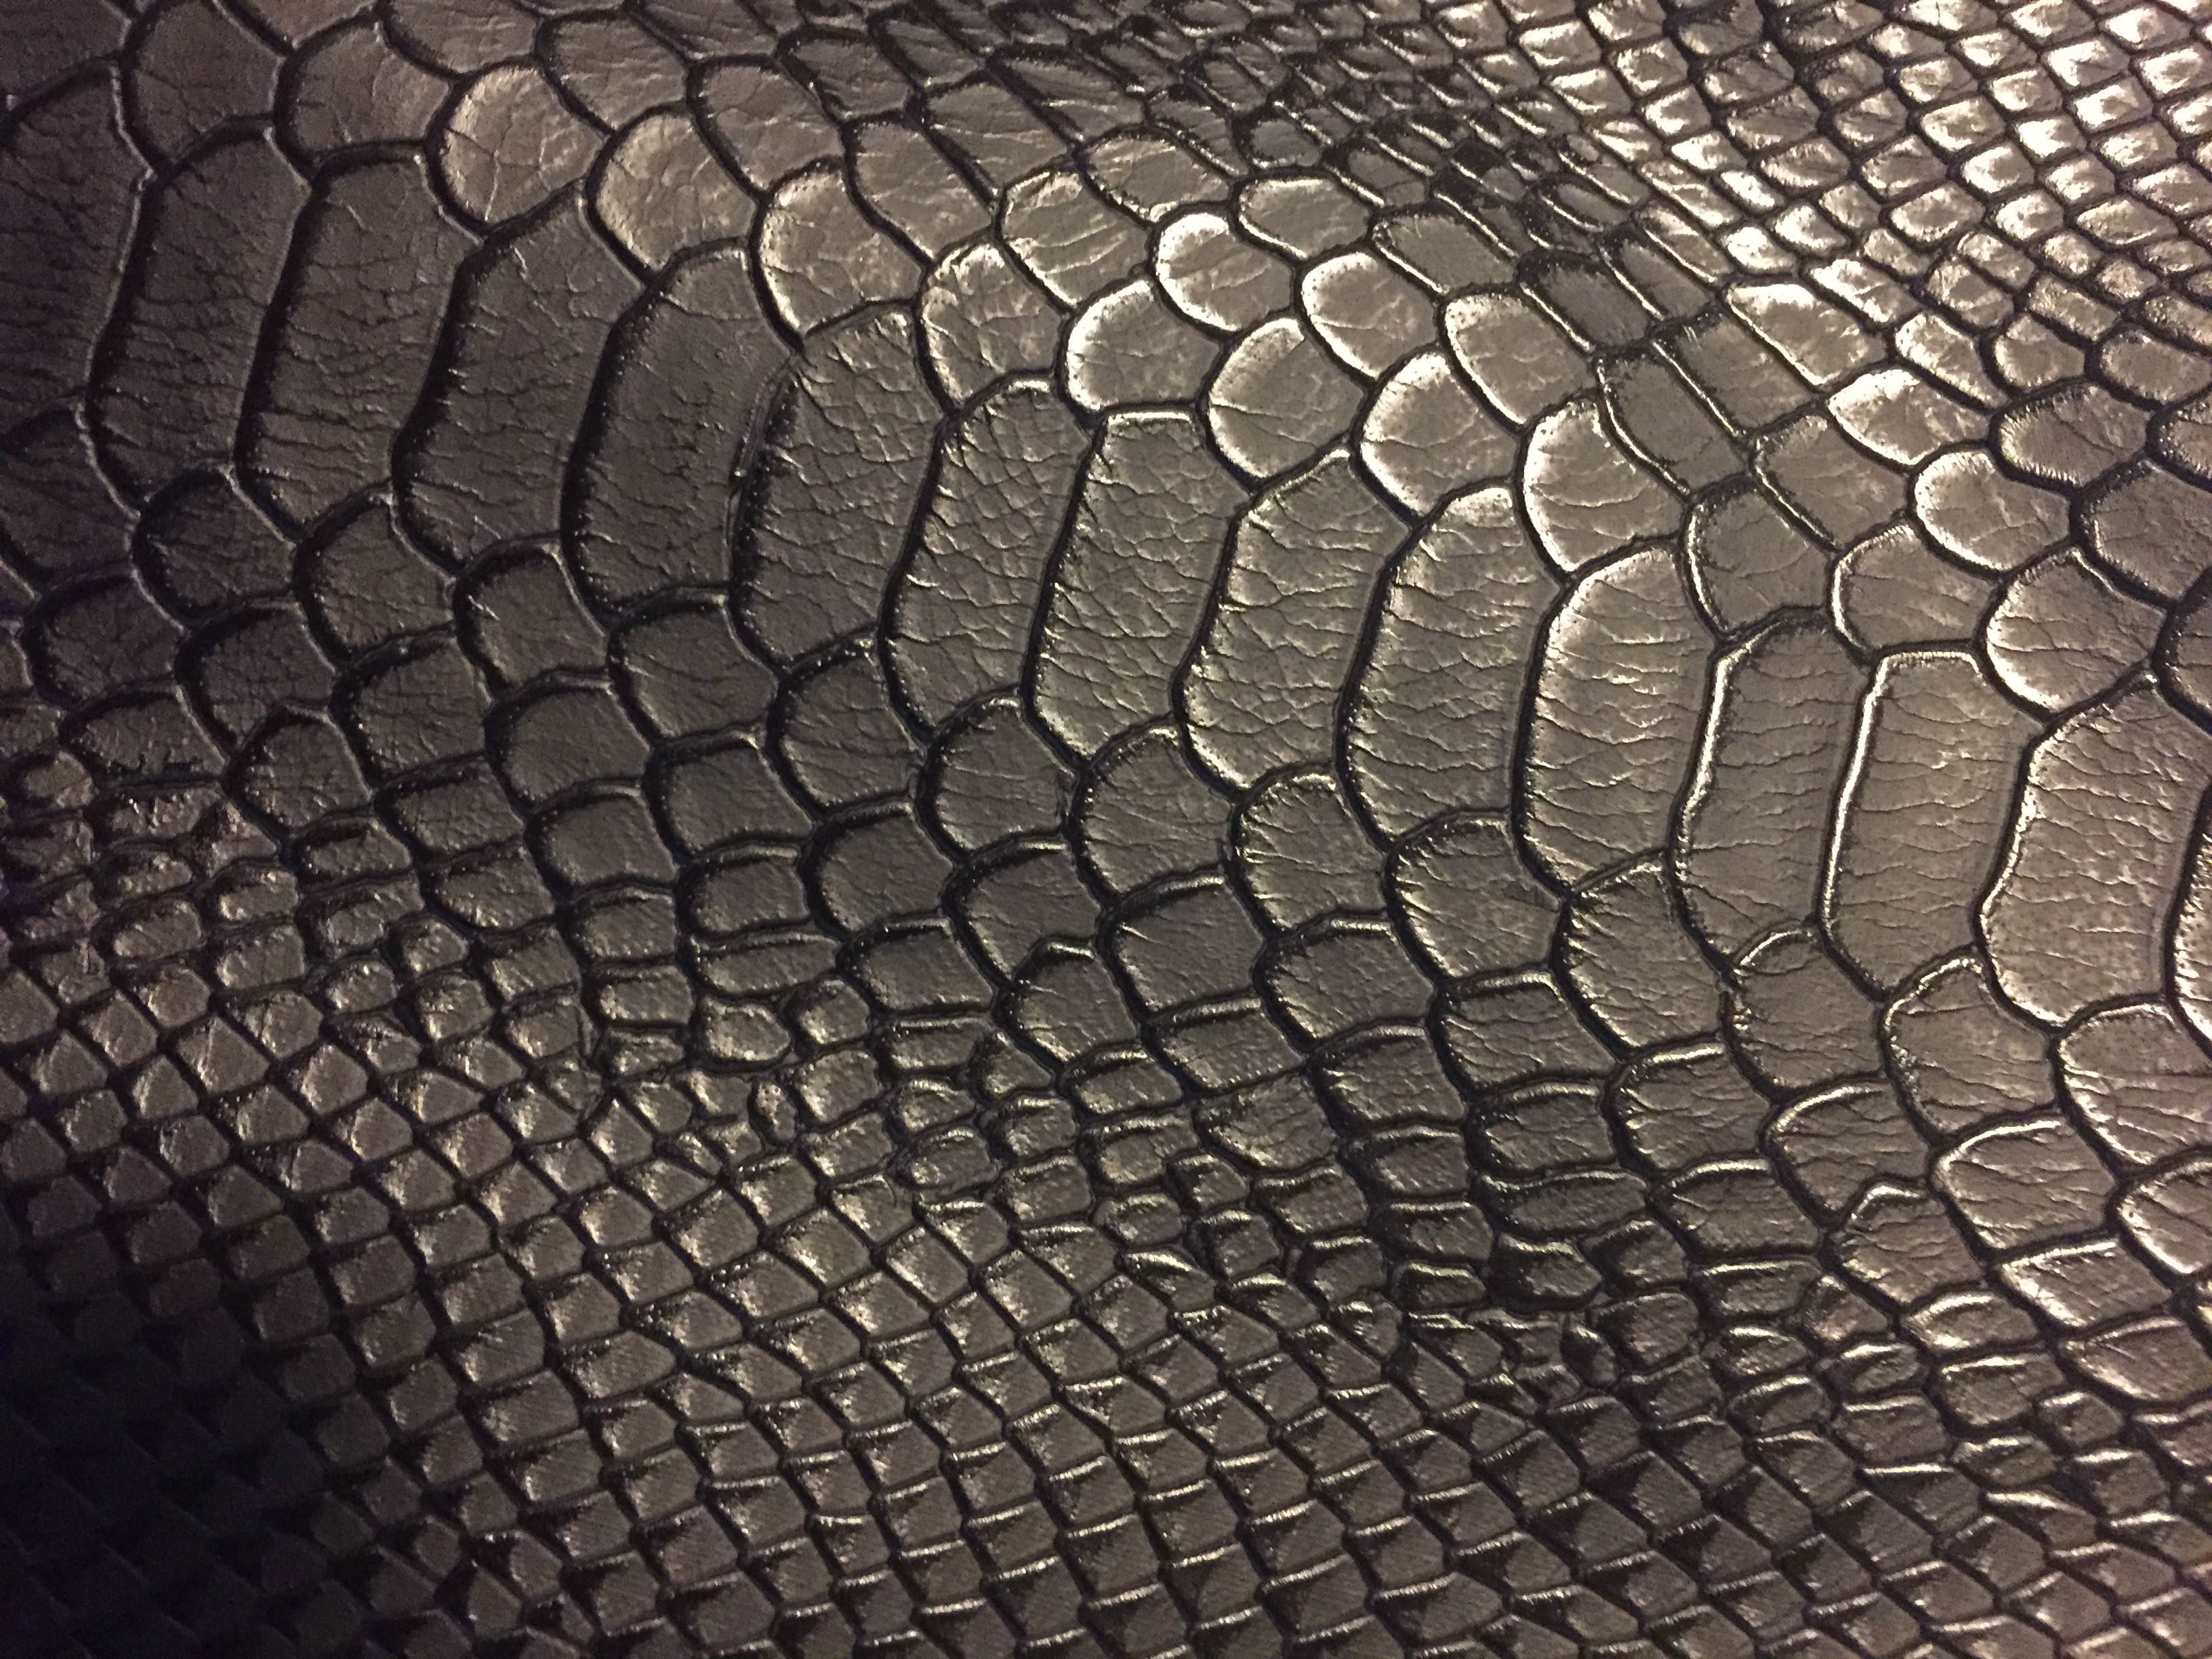 Texture Synthetic Snake Skin On Draw String Bag Textures And